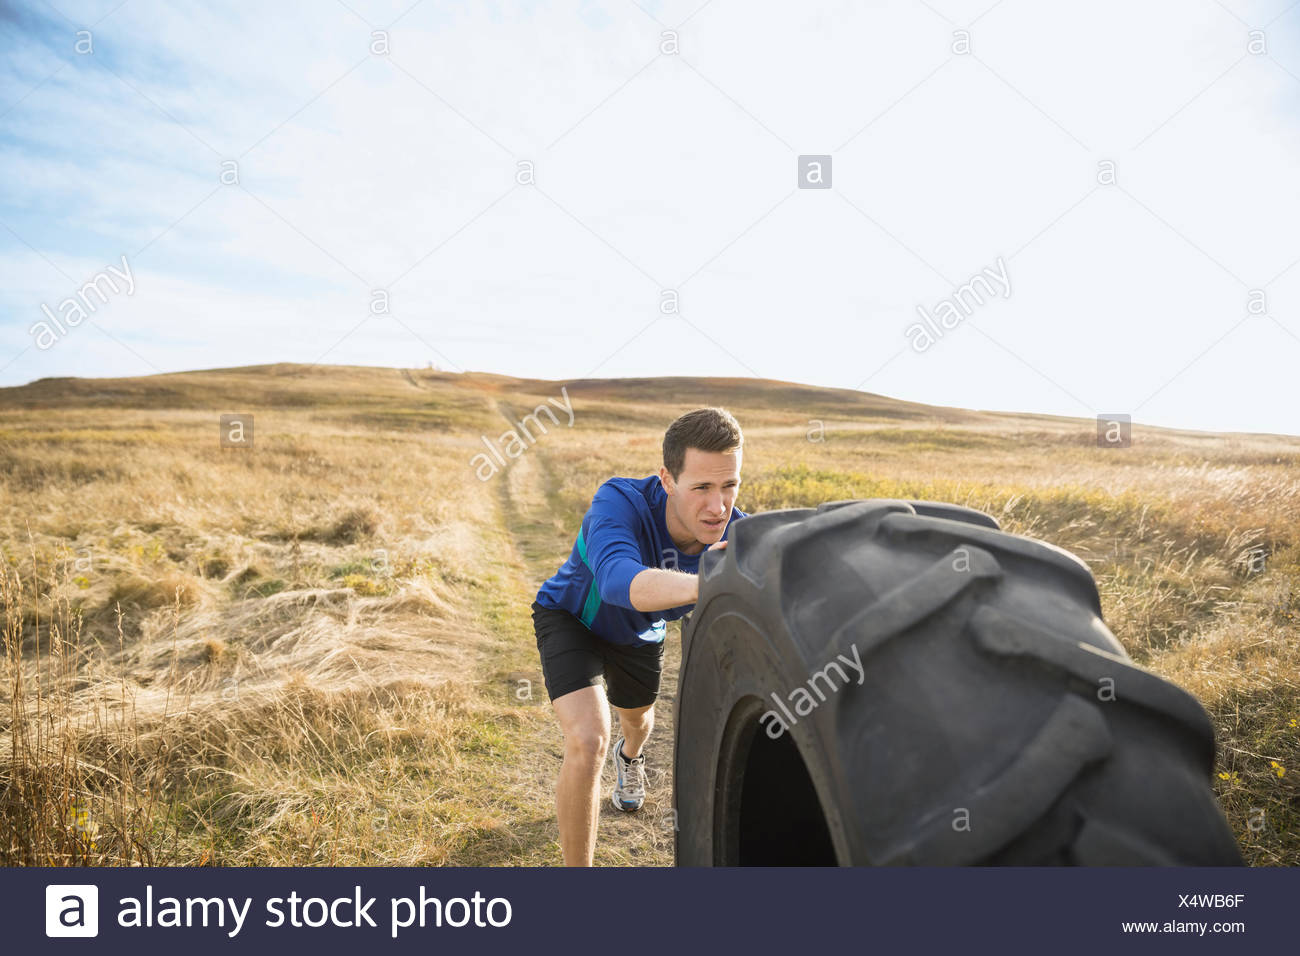 Man pushing crossfit tire in sunny rural field - Stock Image